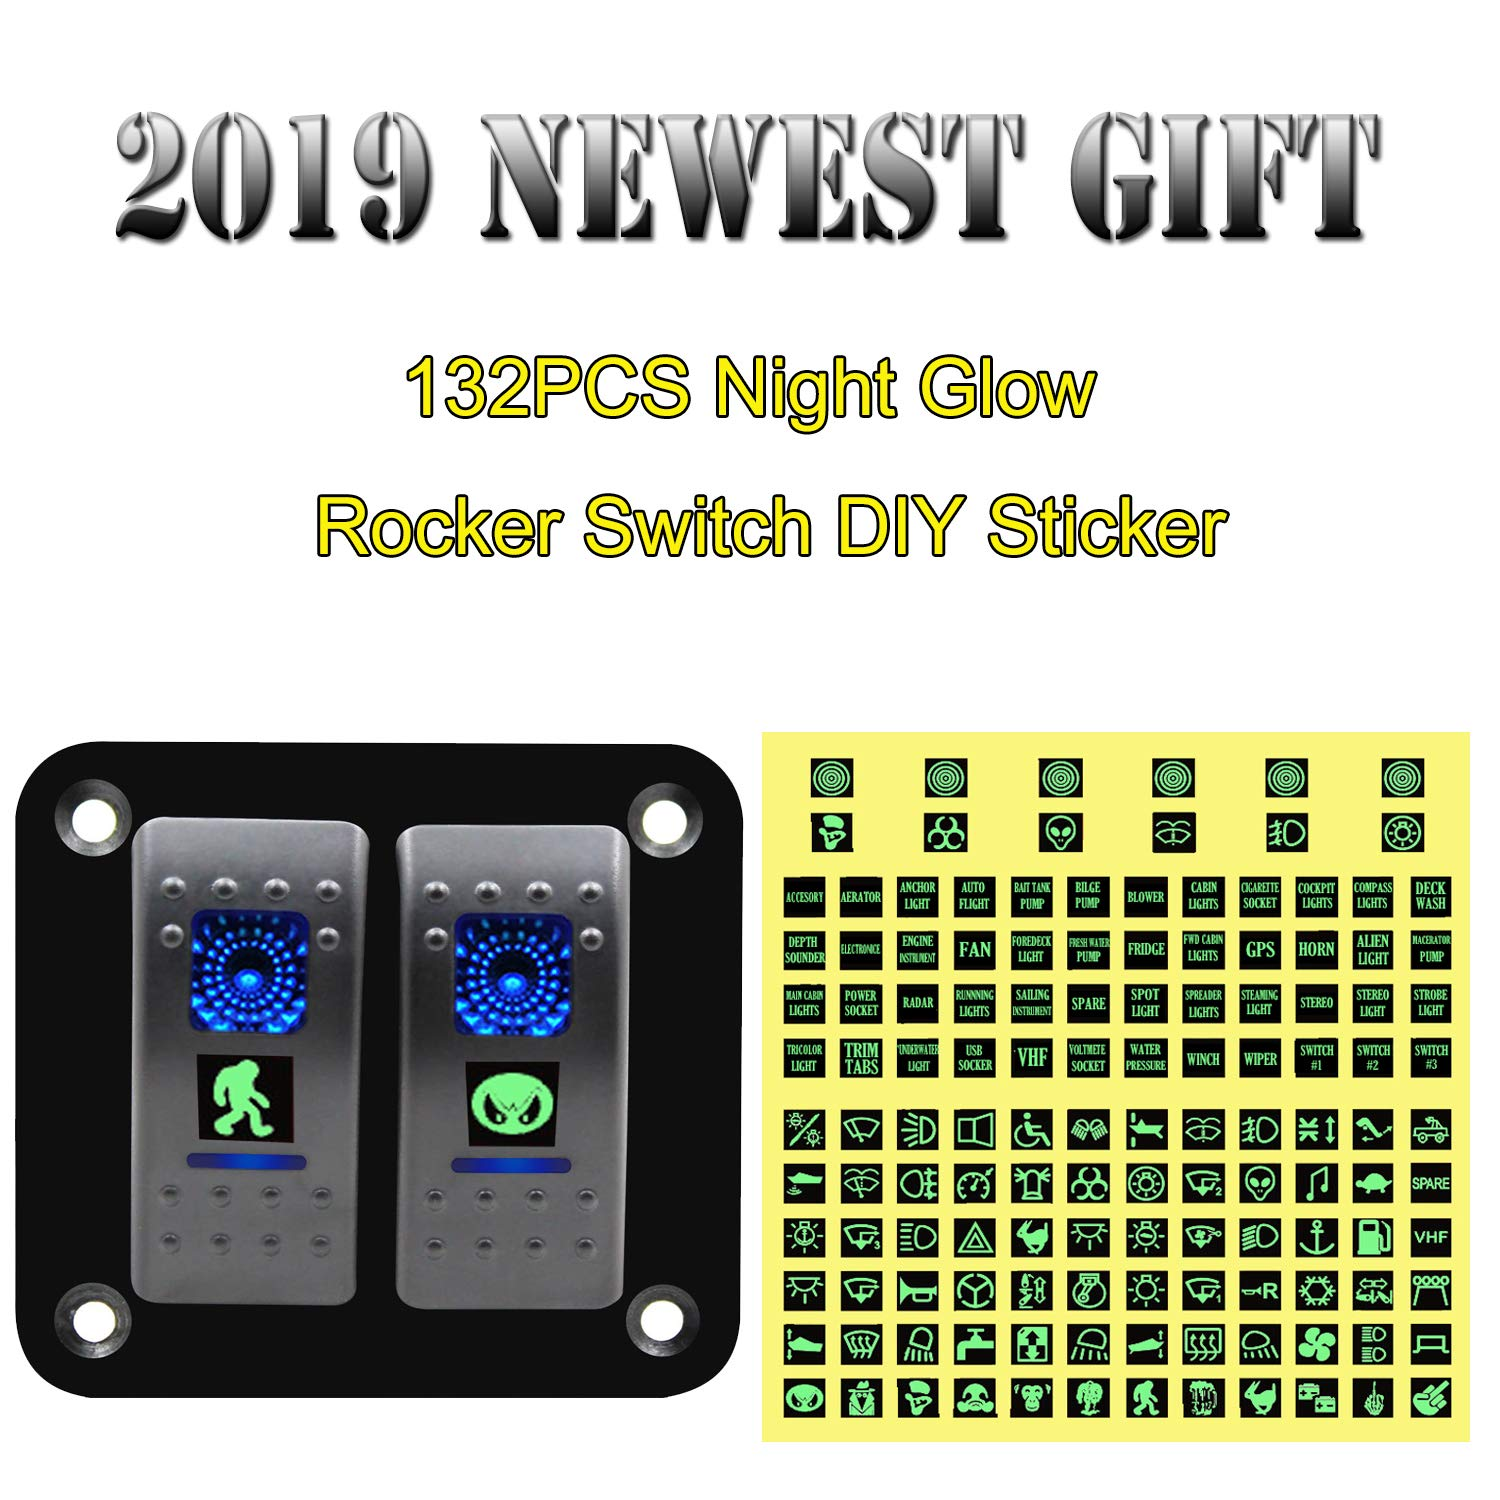 FXC Rocker Switch Aluminum Panel 2 Gang Toggle Switches Dash 5 Pin ON/Off 2 LED Backlit for Boat Car Marine Blue by FXC